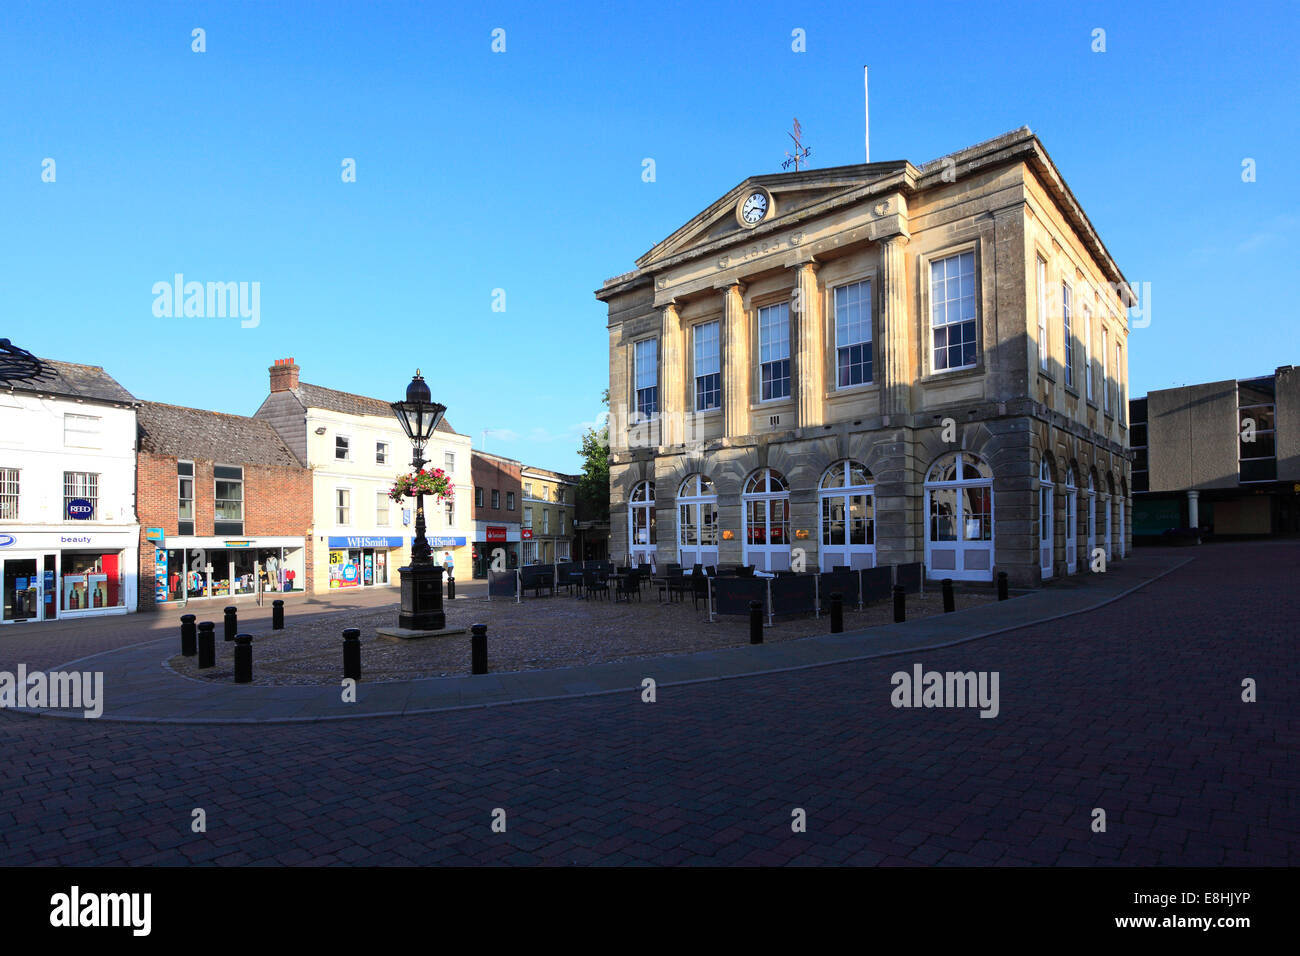 The Guildhall building, Andover town, Hampshire County; England; Britain, UK - Stock Image